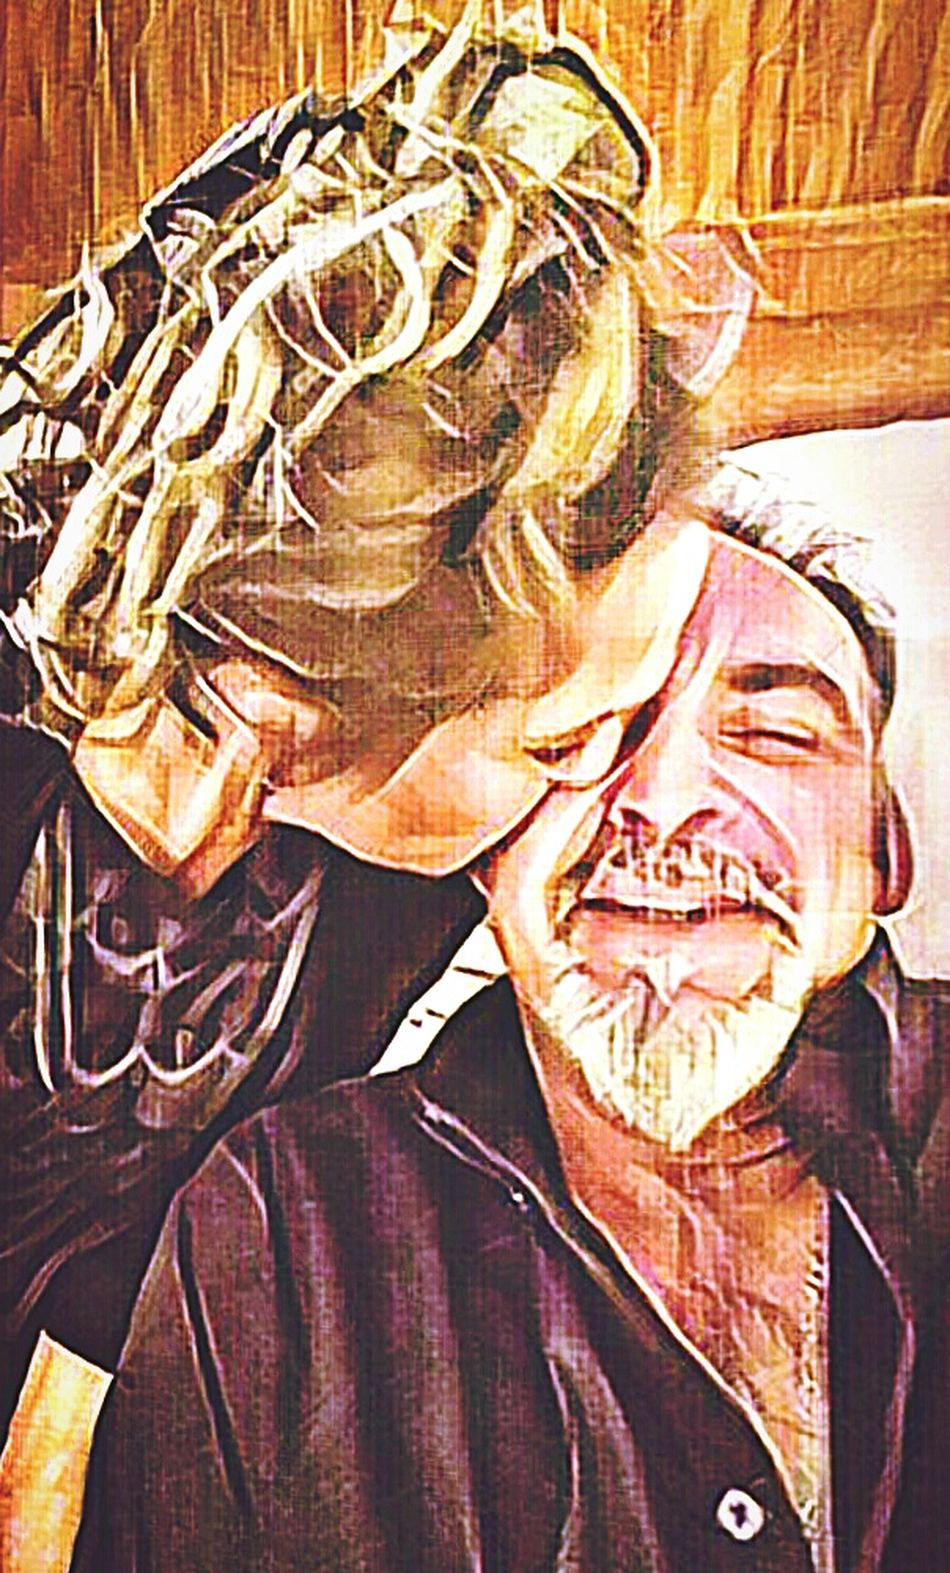 Picture I took of my boyfriend and I after a baseball banquet. I decided to give him a little peck on the cheek!!😘 Portrait Close-up Smiling Cheerful Adult Indoors  Real People People One Man Only The New Normal Eyeeem Gallery Eyeemphotography Eyeemoninstragram The Week On Eyem Taking Photos Texaslife EyeEm Gallery Eyem Photo Boyfriend And Girlfriend Boyfriend & I ♥ Love Without Boundaries Lovephotography  Enjoy The New Normal AlwaysSmile Alwaysonmymind